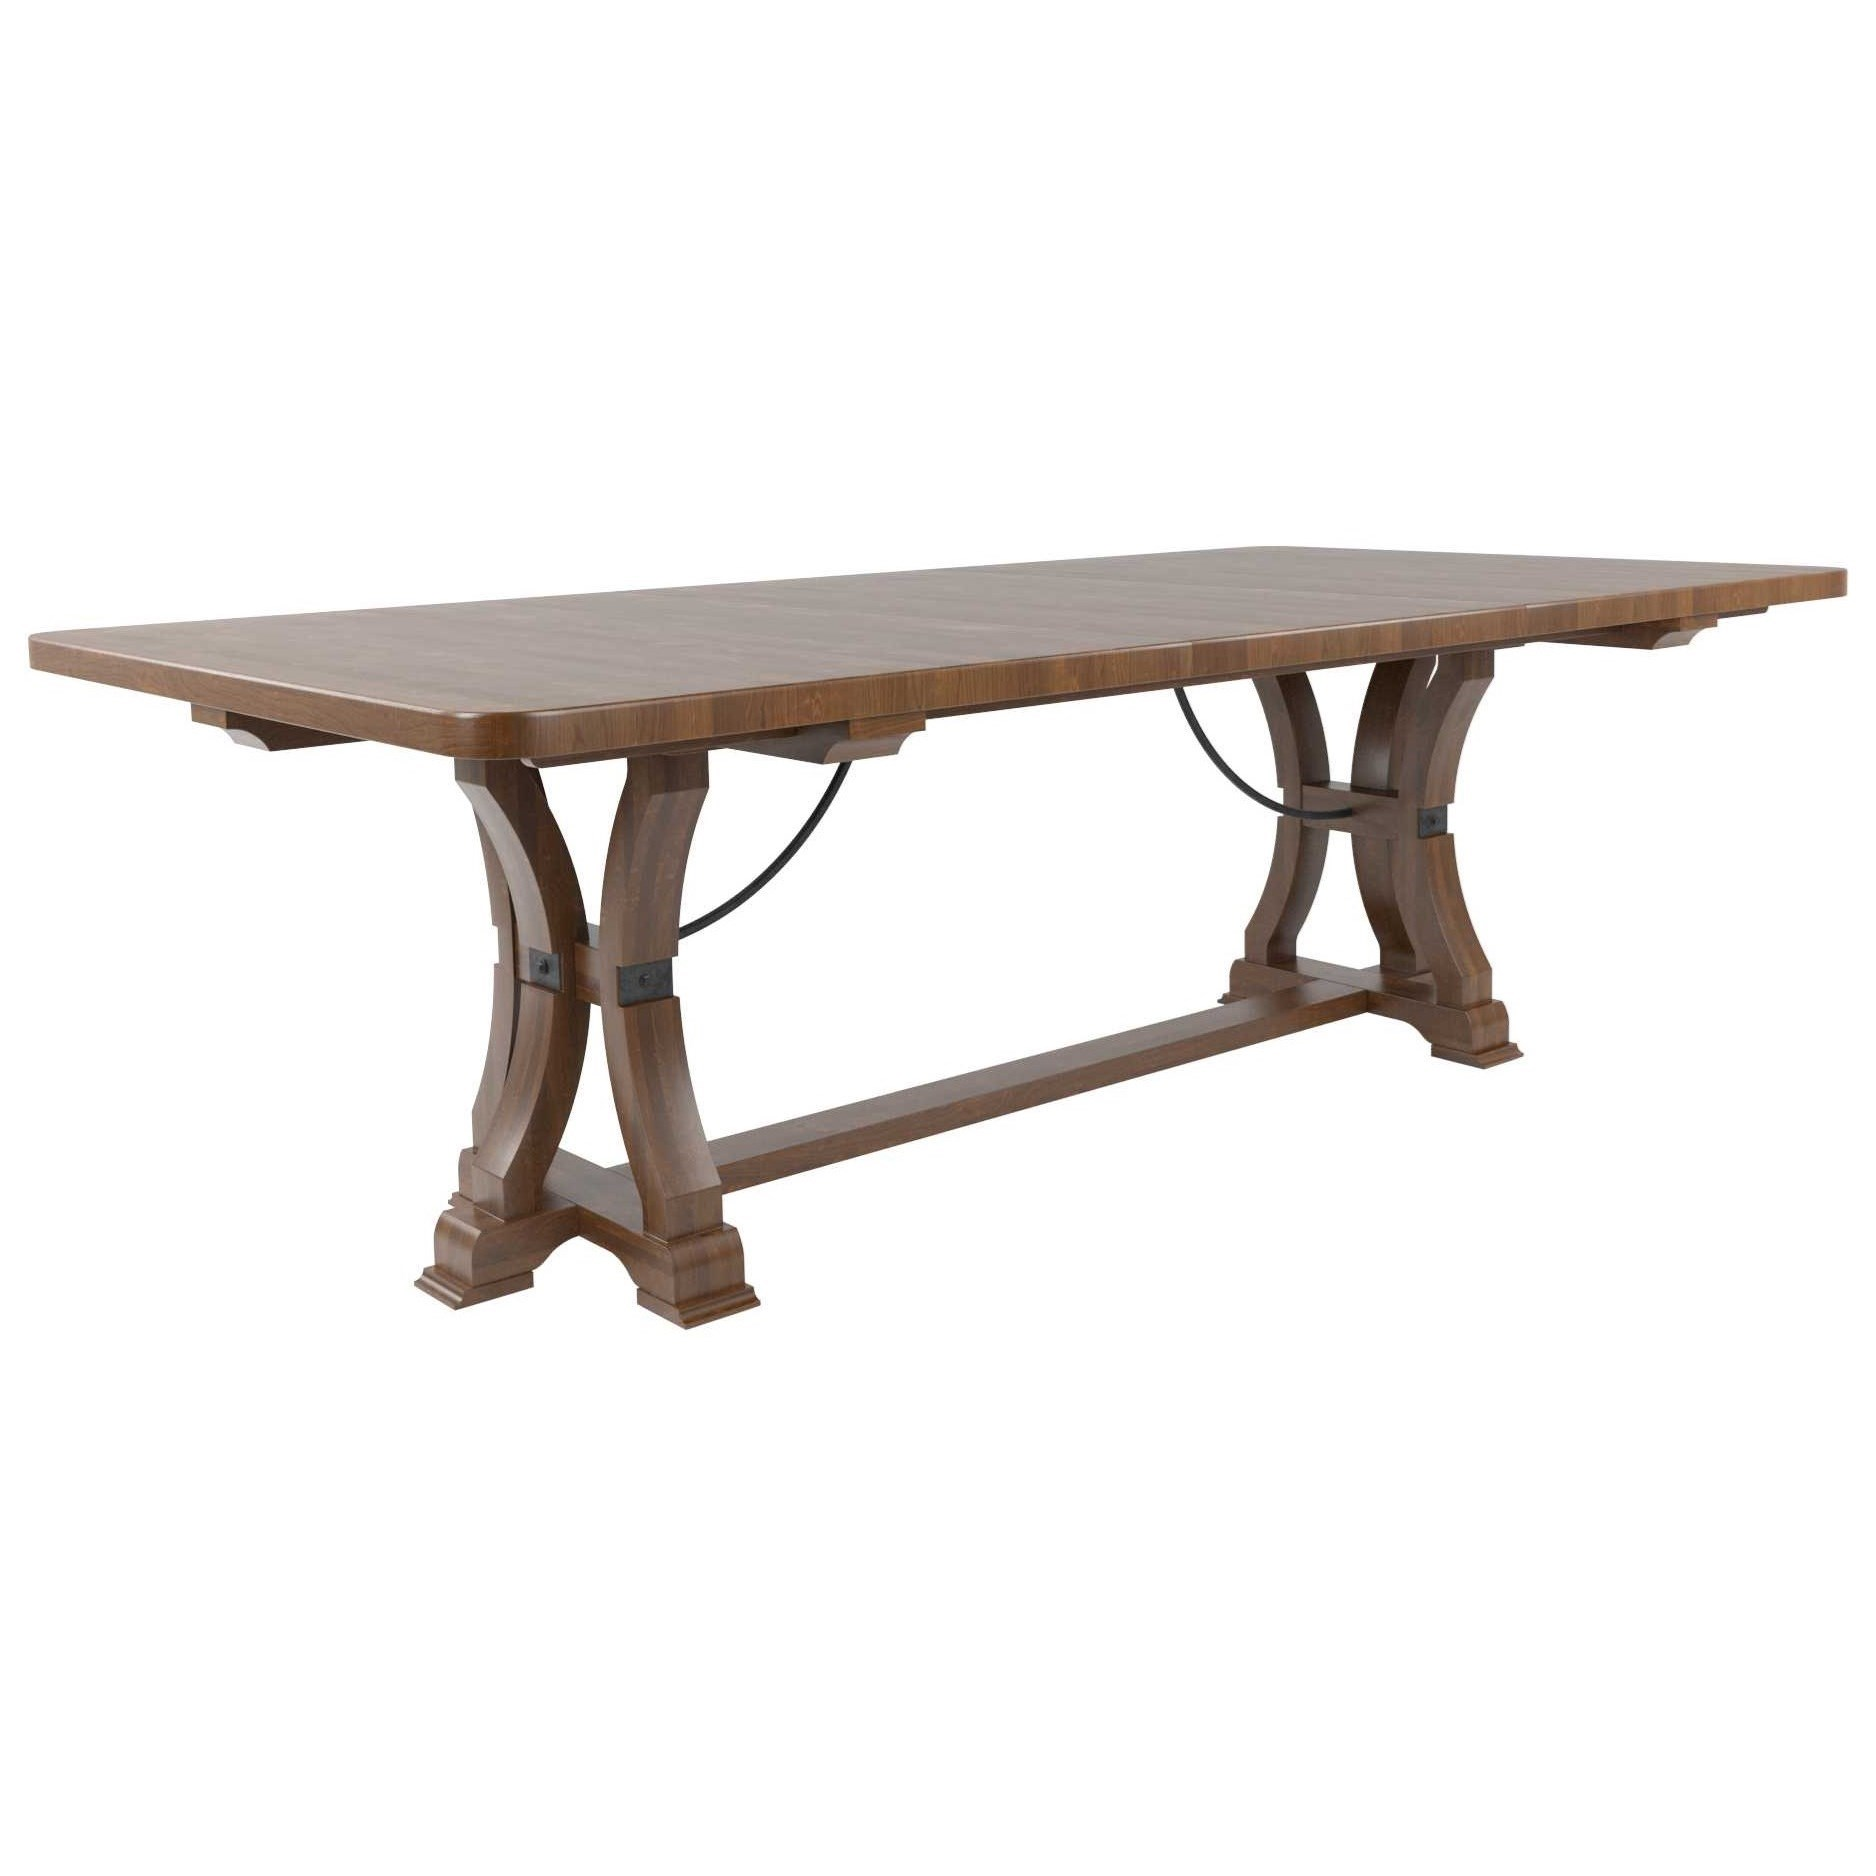 Farmhouse Chic Customizable Dining Table by Canadel at Dinette Depot